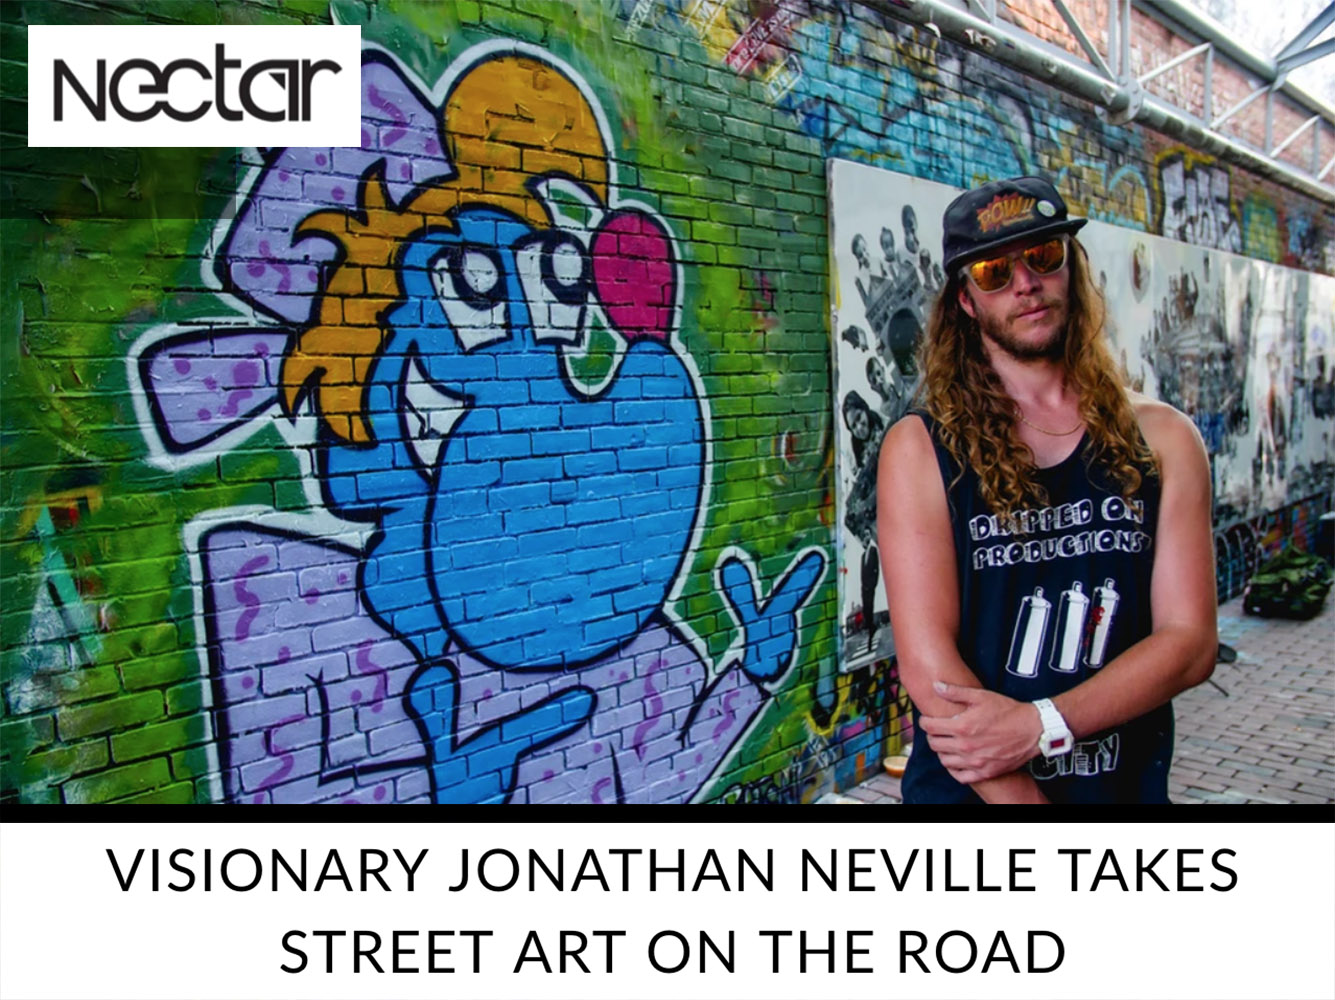 nectar-sunglasses-jonathan-neville-dripped-on-productions